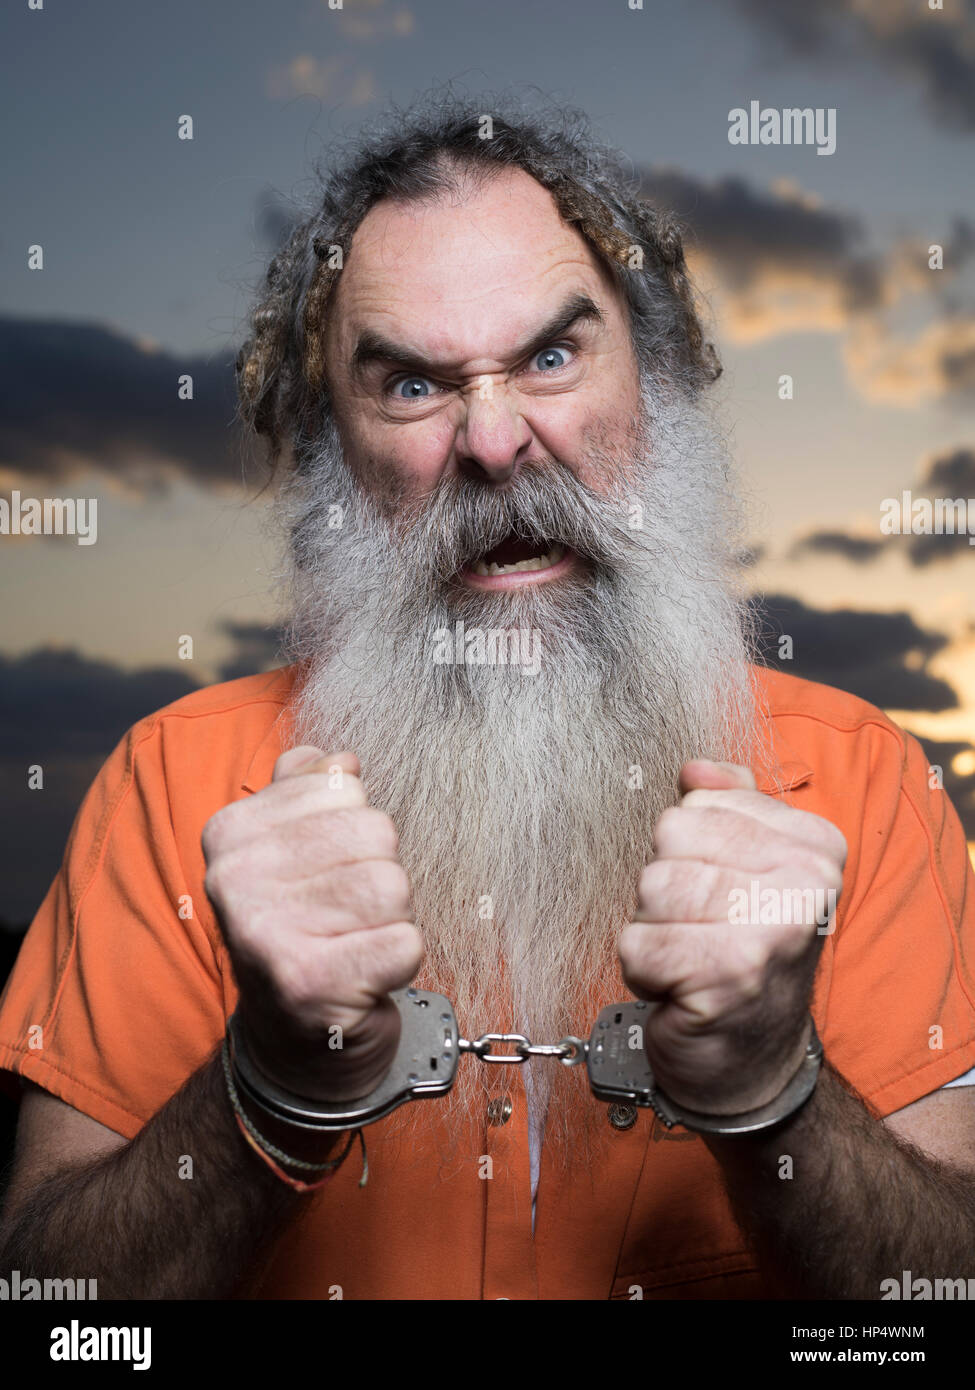 Man with beard with prison orange jumpsuit - Stock Image